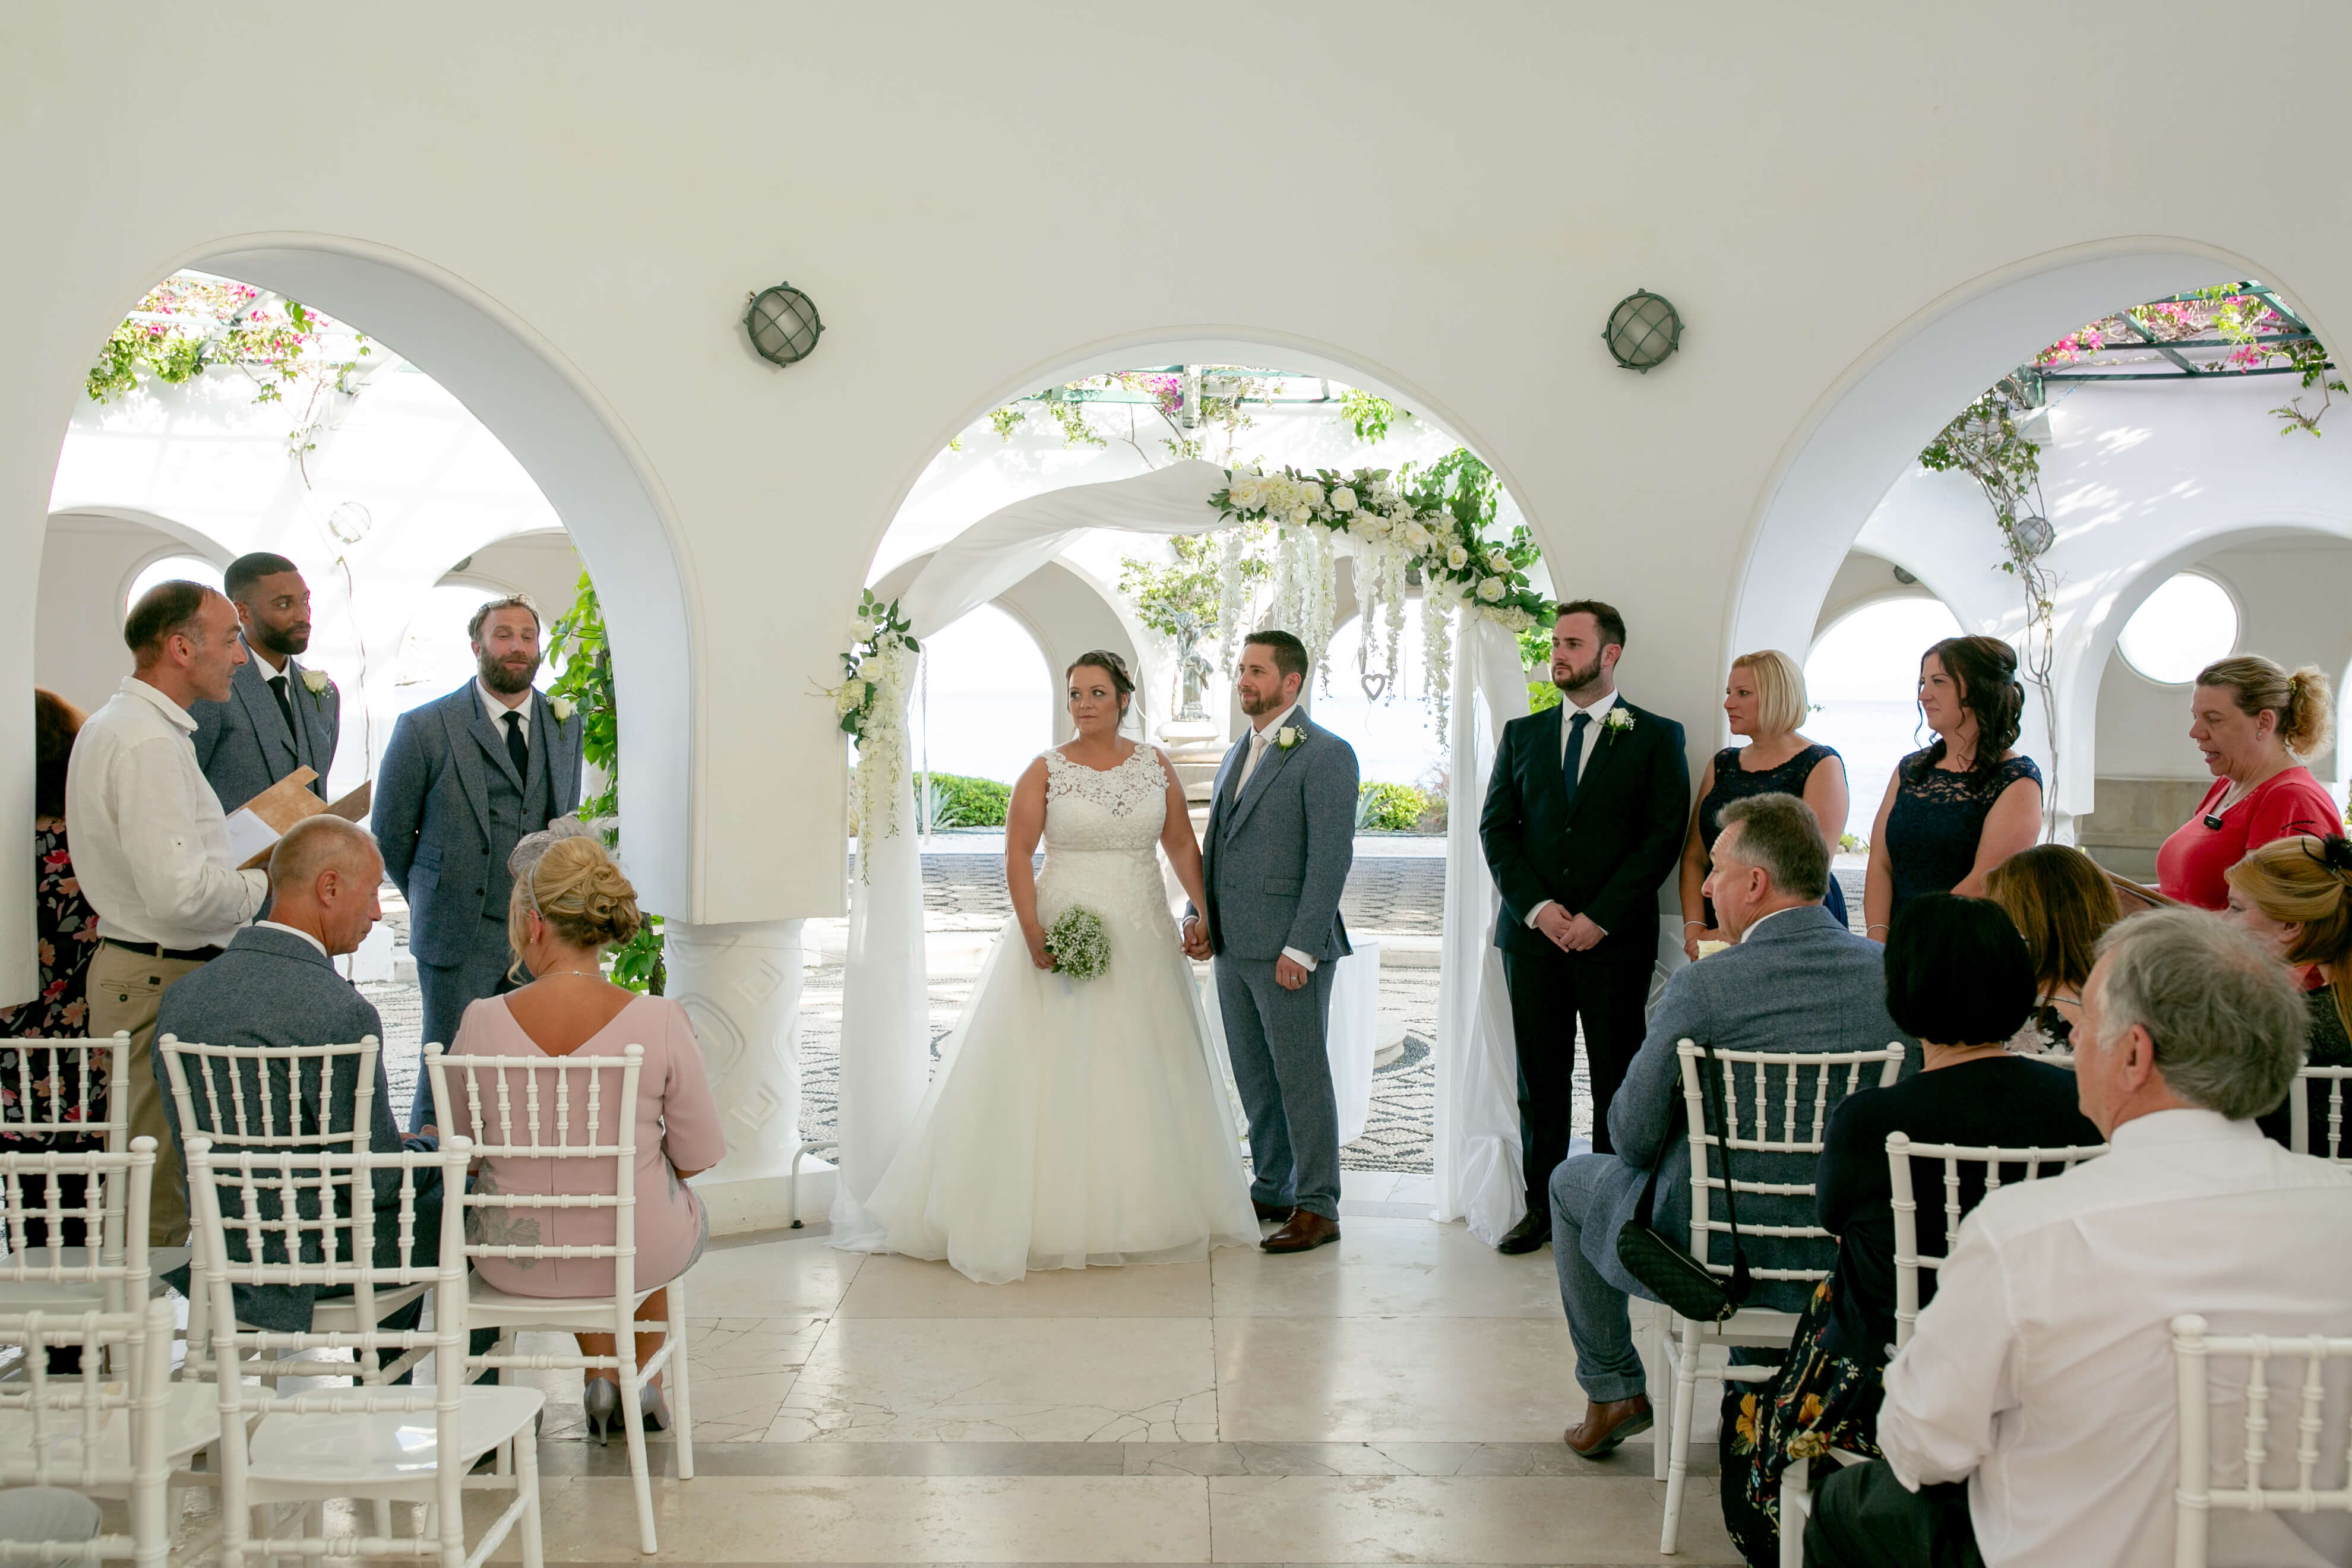 Intimate Weddings Abroad - in Rhodes - By The Bridal Consultant